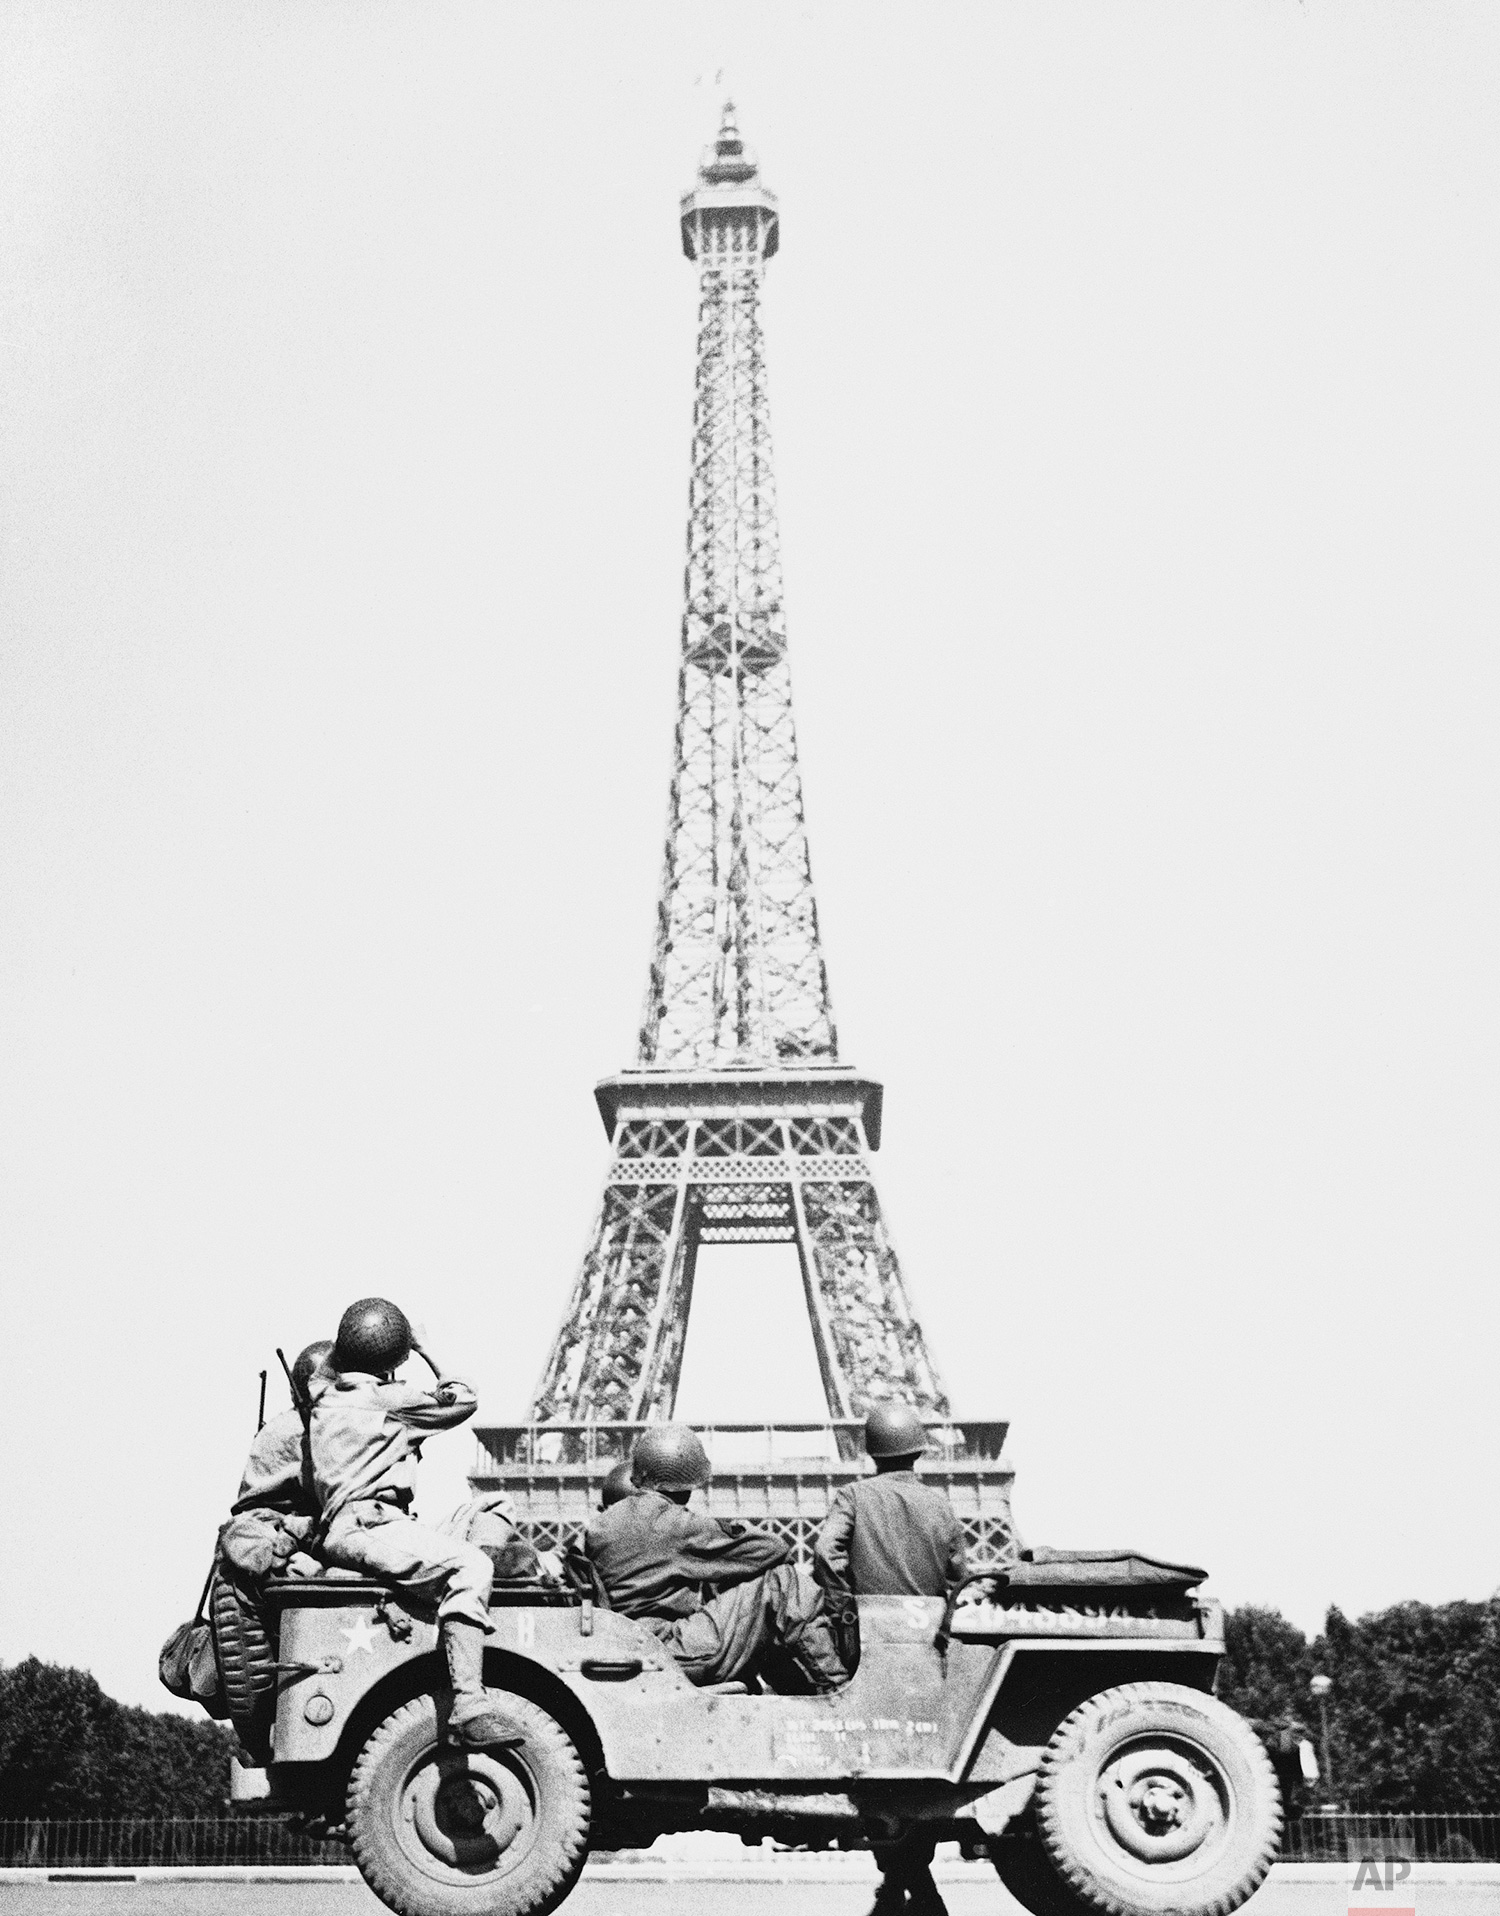 American soldiers who took part in the liberation of Paris halt their jeep to look at the Eiffel Tower on August 25, 1944, from which the Tricolor flies again. (AP Photo/John Downey)